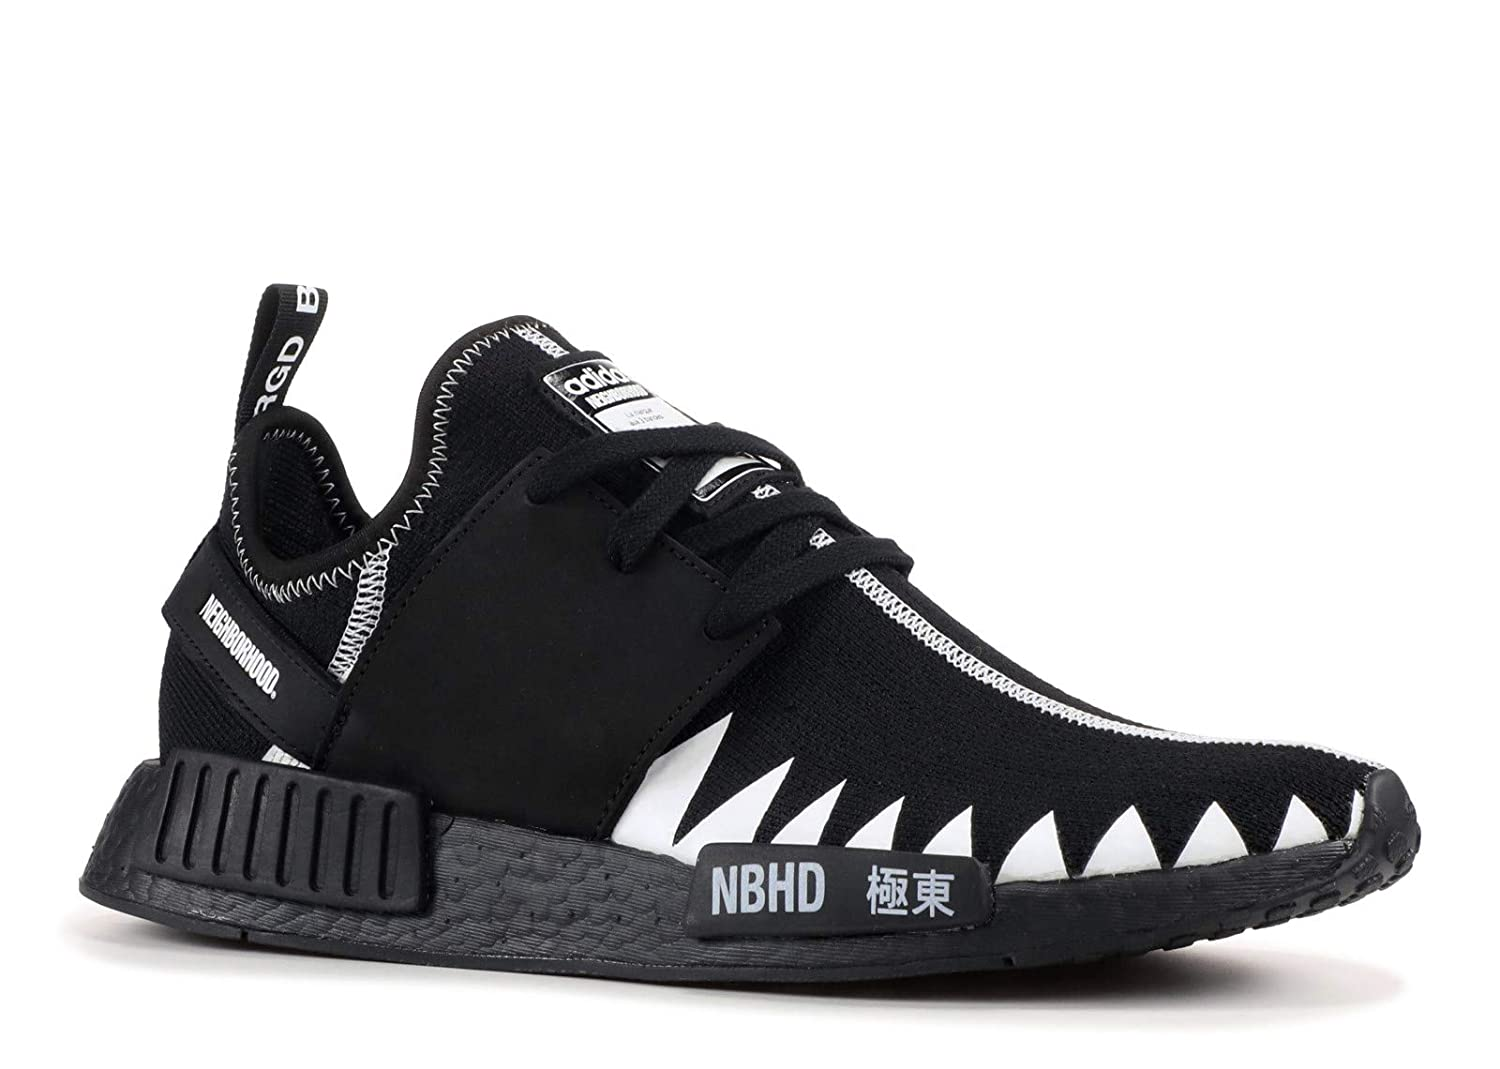 online store 1c8a2 a454a Amazon.com   adidas Originals NMD R1 PK NBHD Mens Running Trainers Sneakers    Basketball